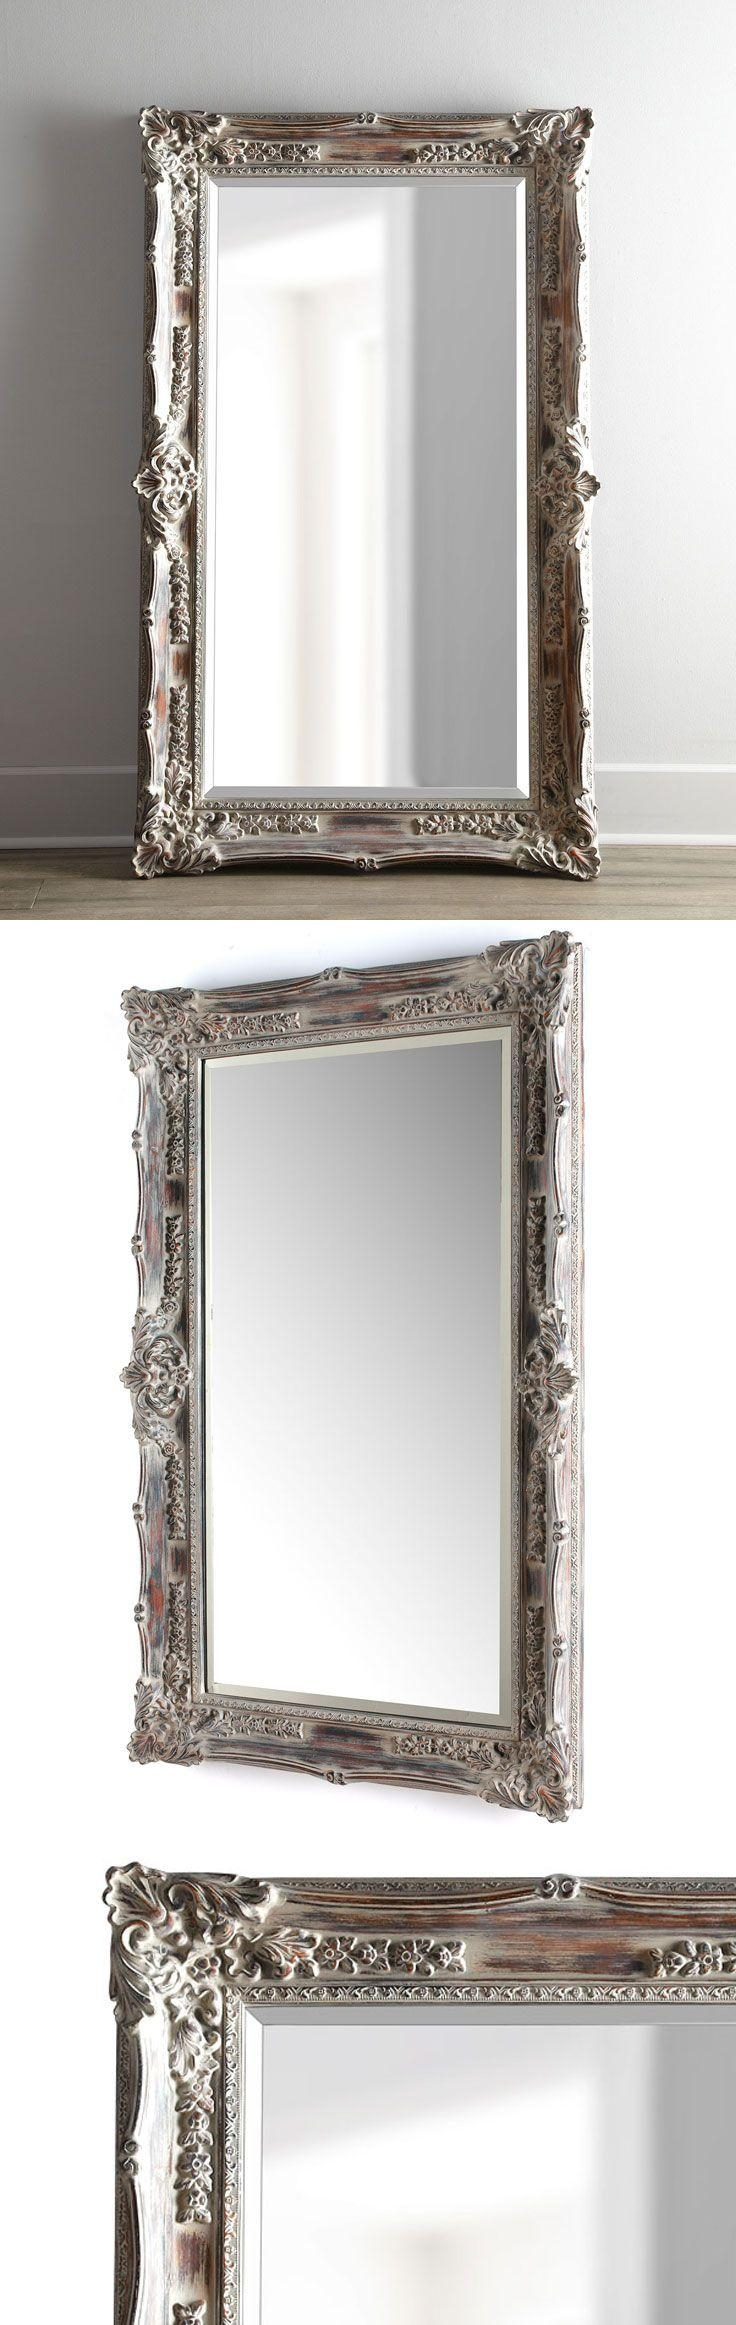 57 Best Shop: Wall Decor Images On Pinterest | Wall Decor, Mirror Intended For French Floor Mirror (Photo 10 of 20)